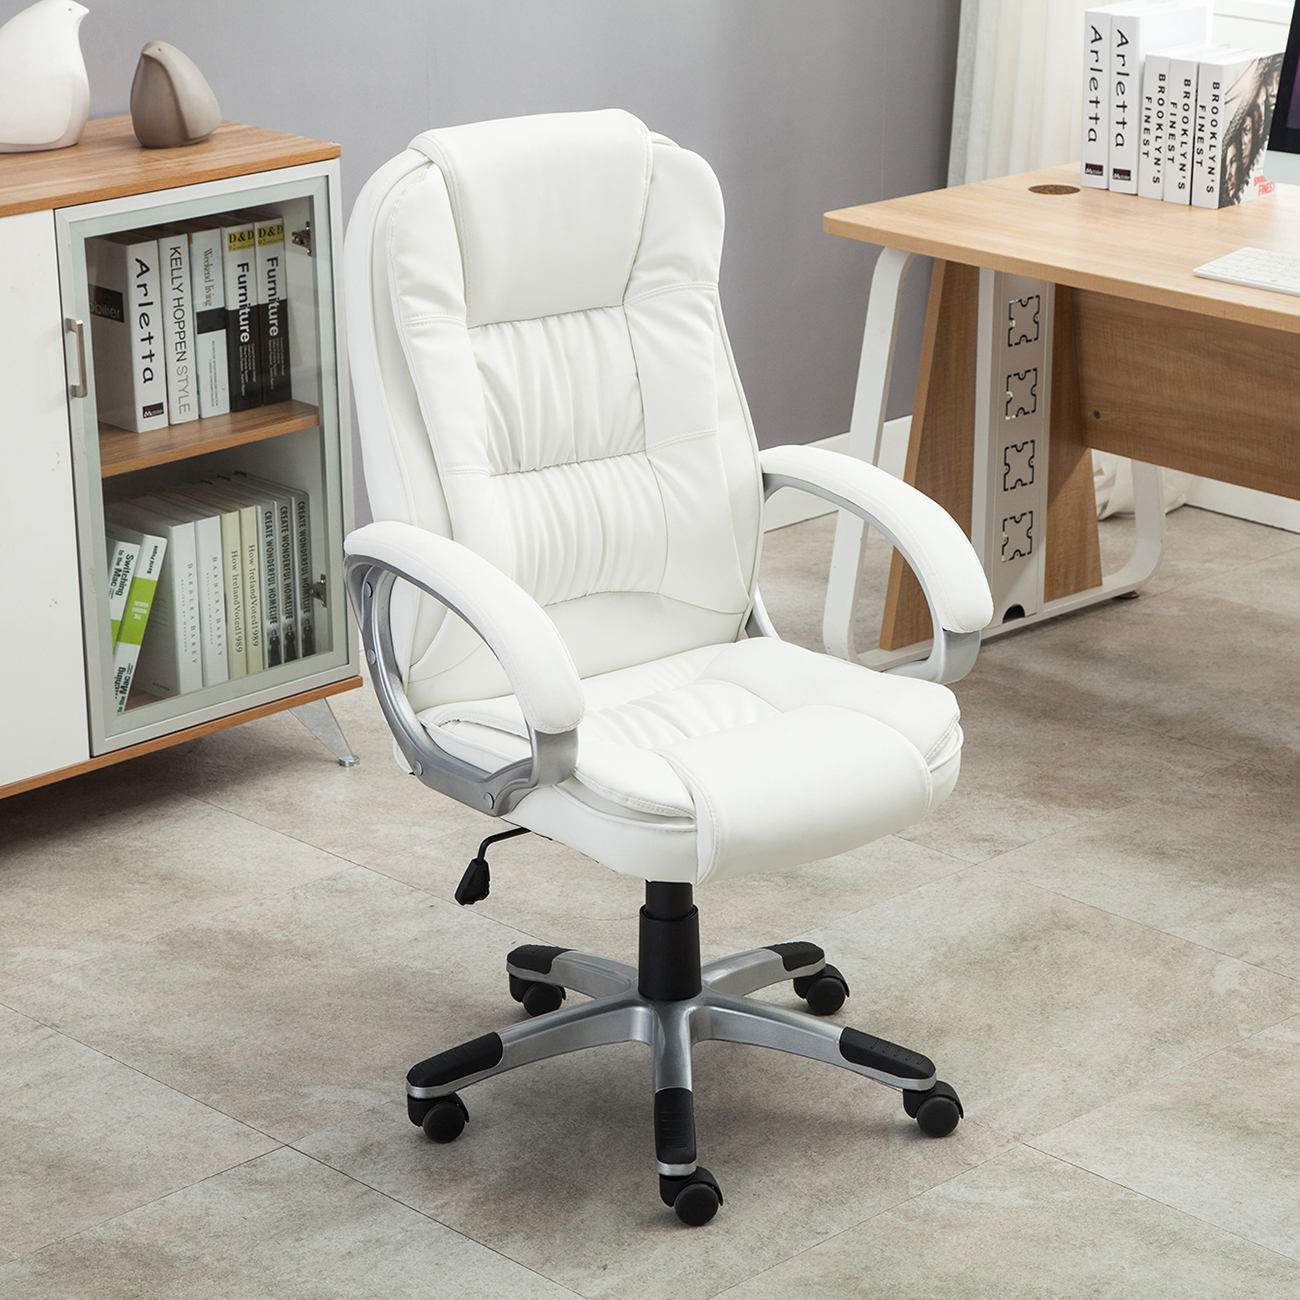 desk chairs white chair design vintage pu leather high back office executive